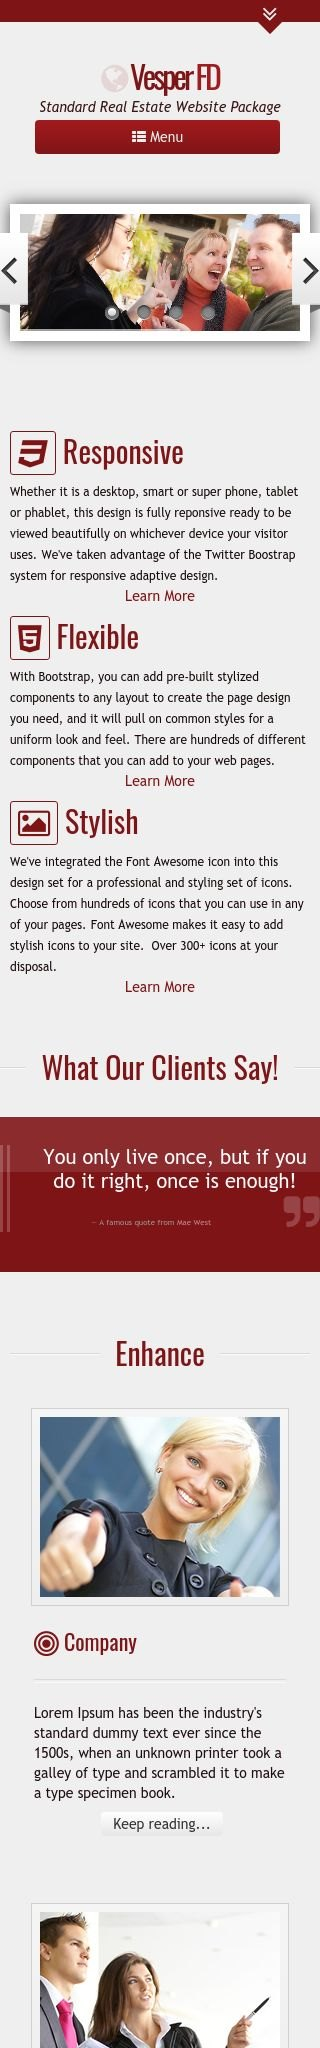 Mobile: Real-estate Wordpress Theme